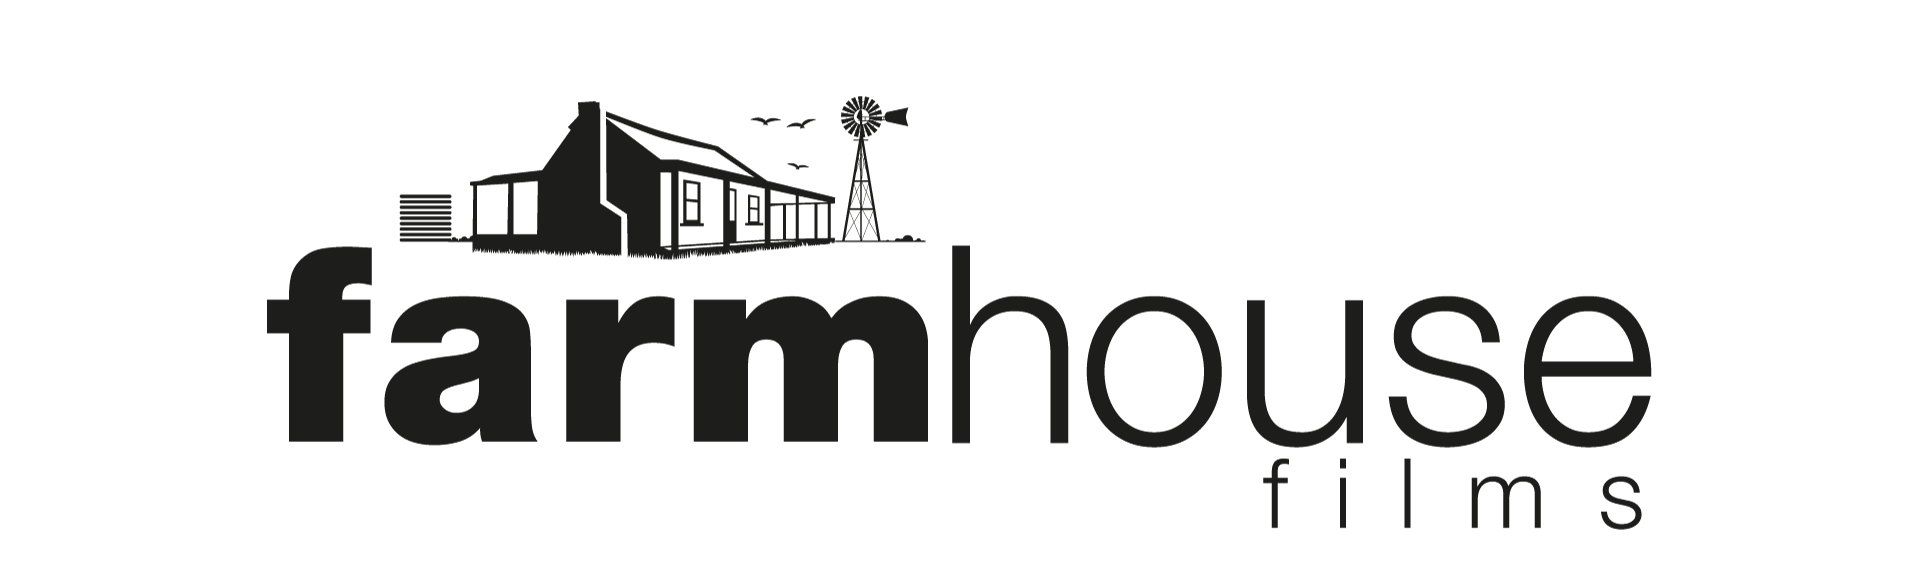 farmhouse-logo-transx1920 copy.png